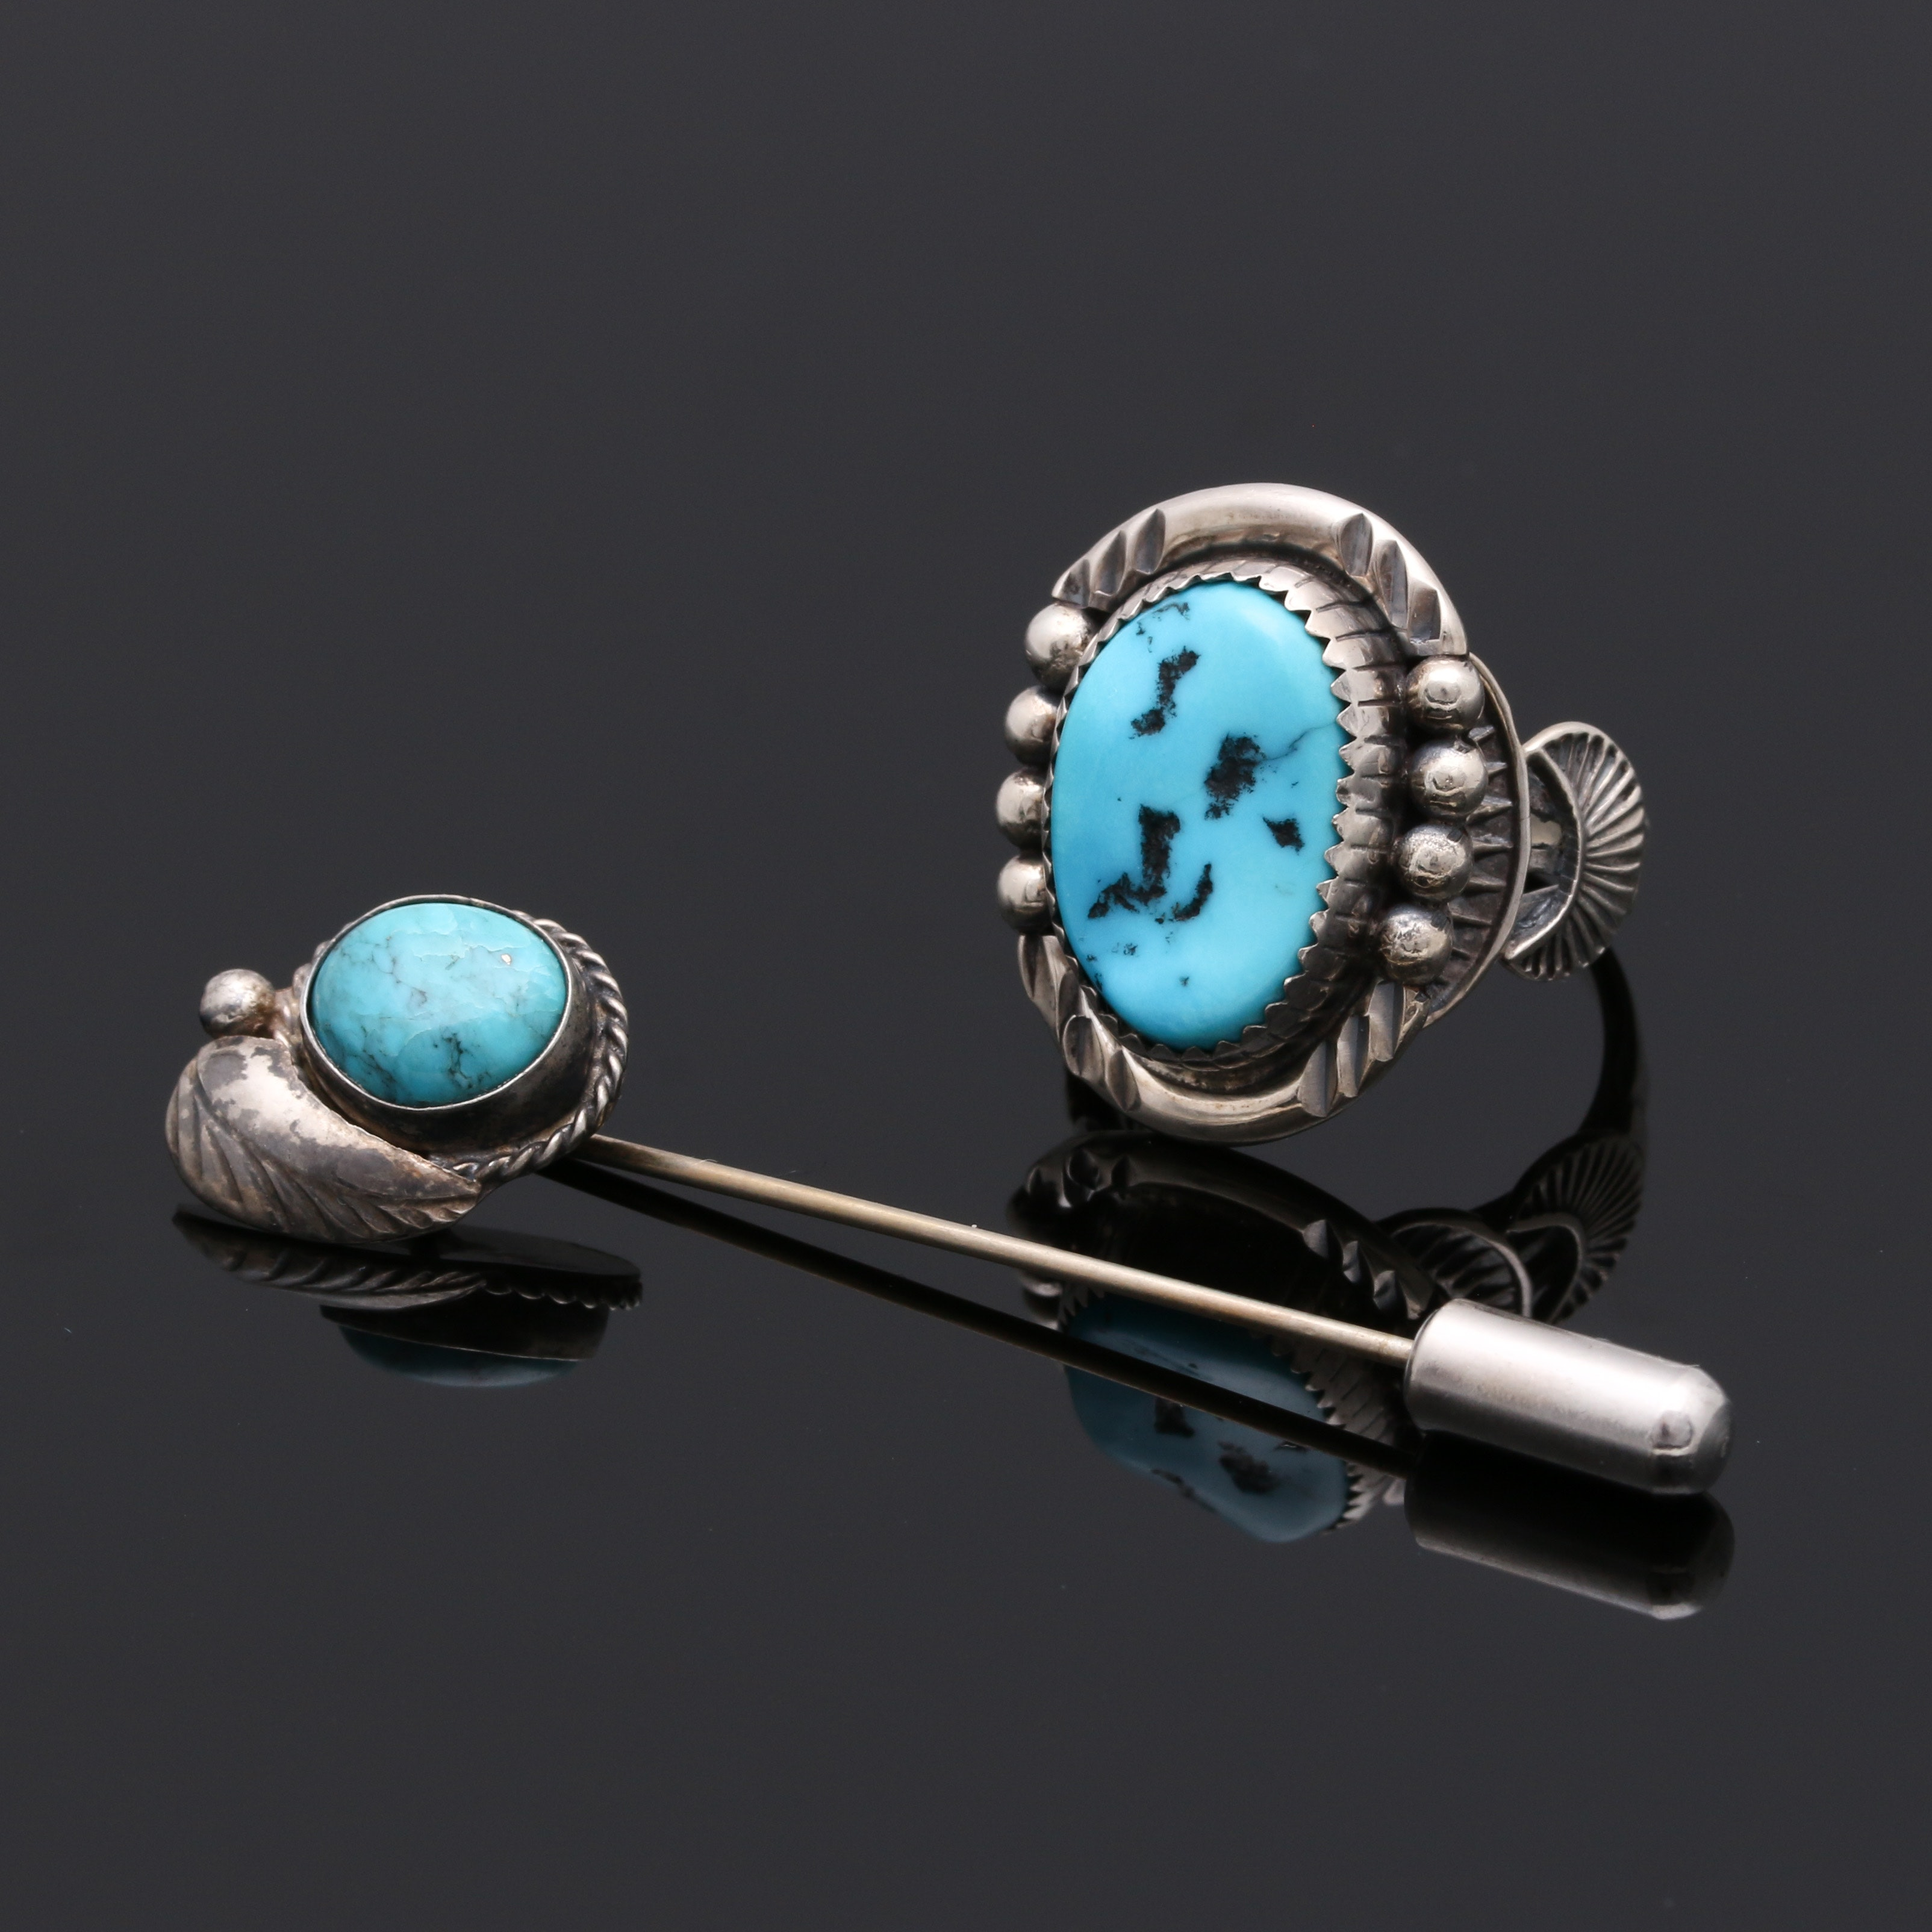 Navajo Style Sterling Silver Turquoise Ring and Stickpin